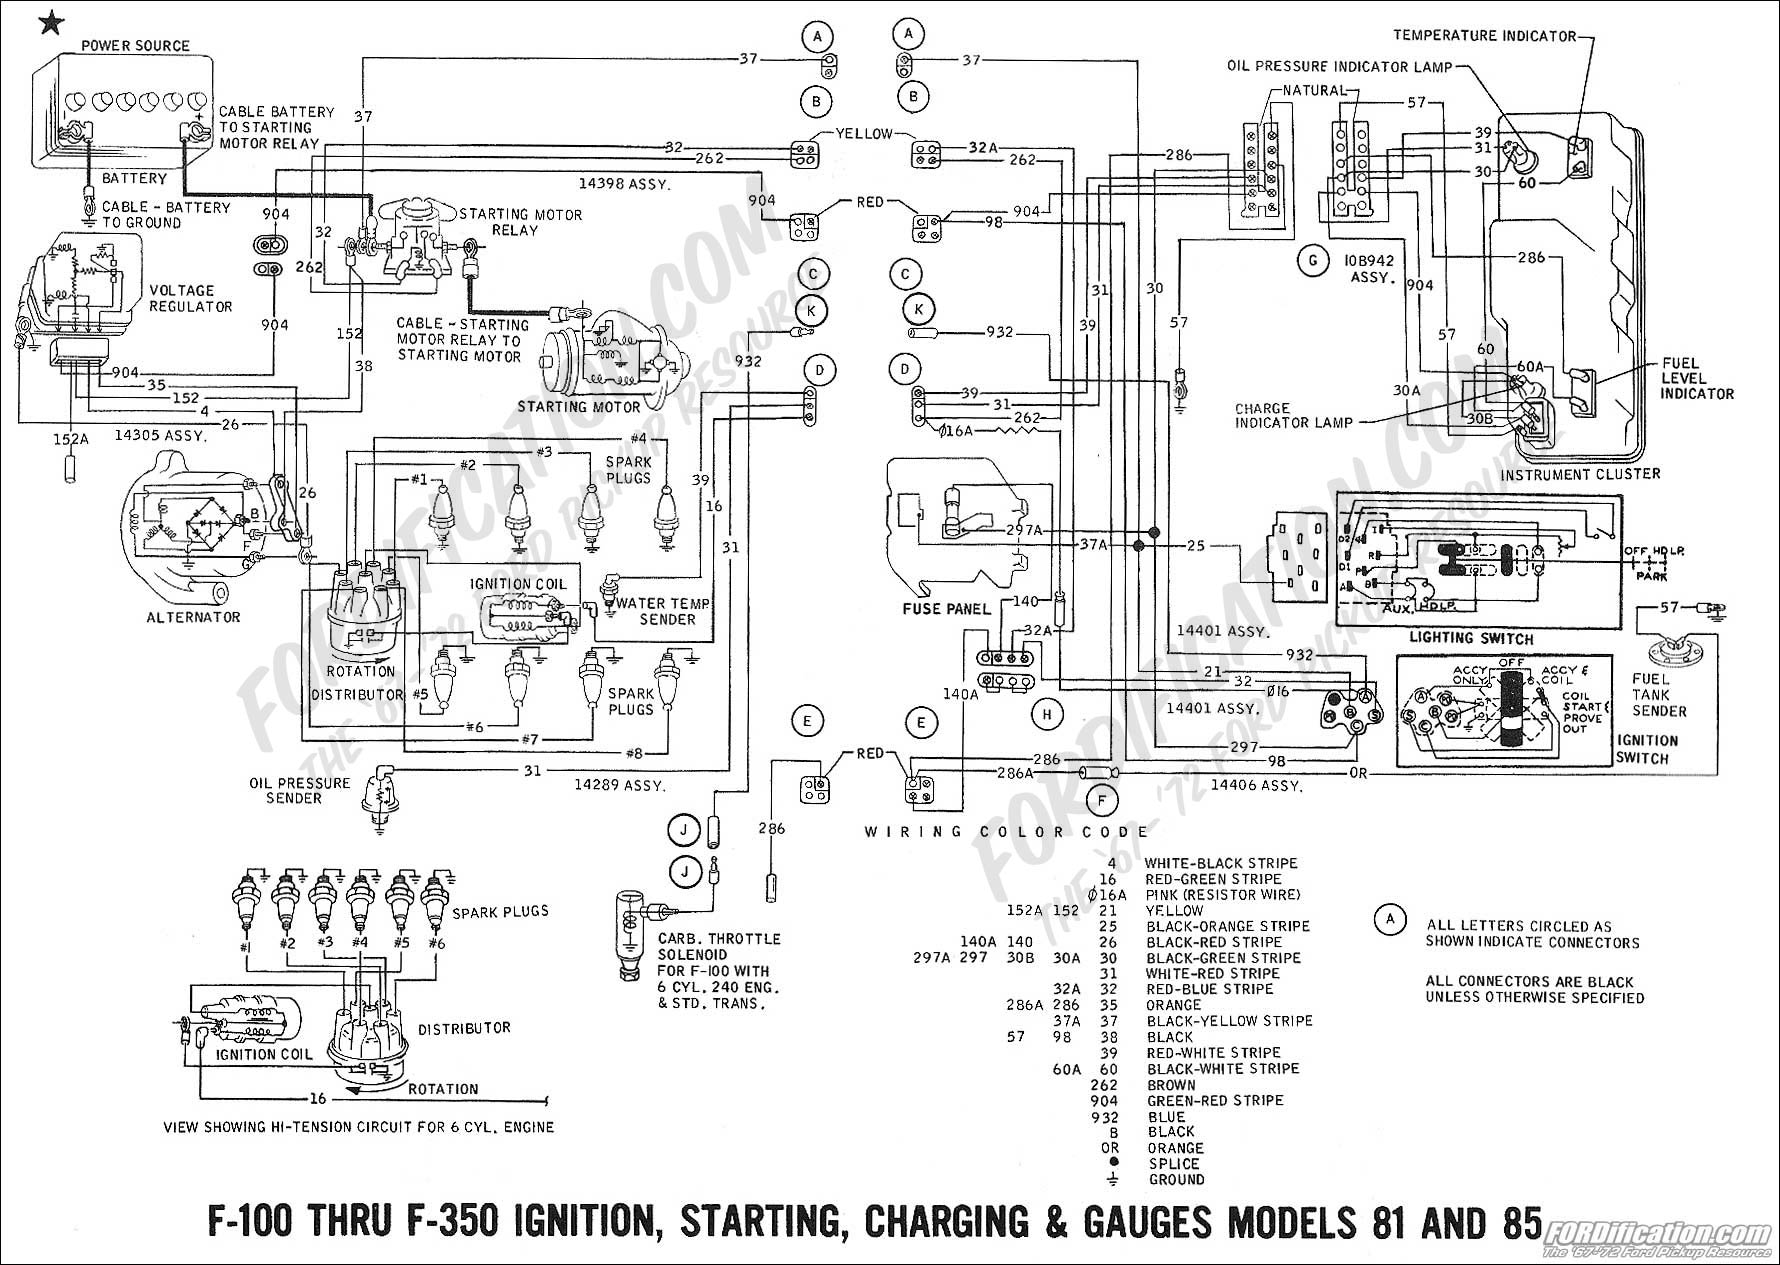 1969 ford pickup wiring diagram data wiring diagrams u2022 rh naopak co 1977 Ford Truck Wiring Diagrams 1969 Bronco Wiring Diagram